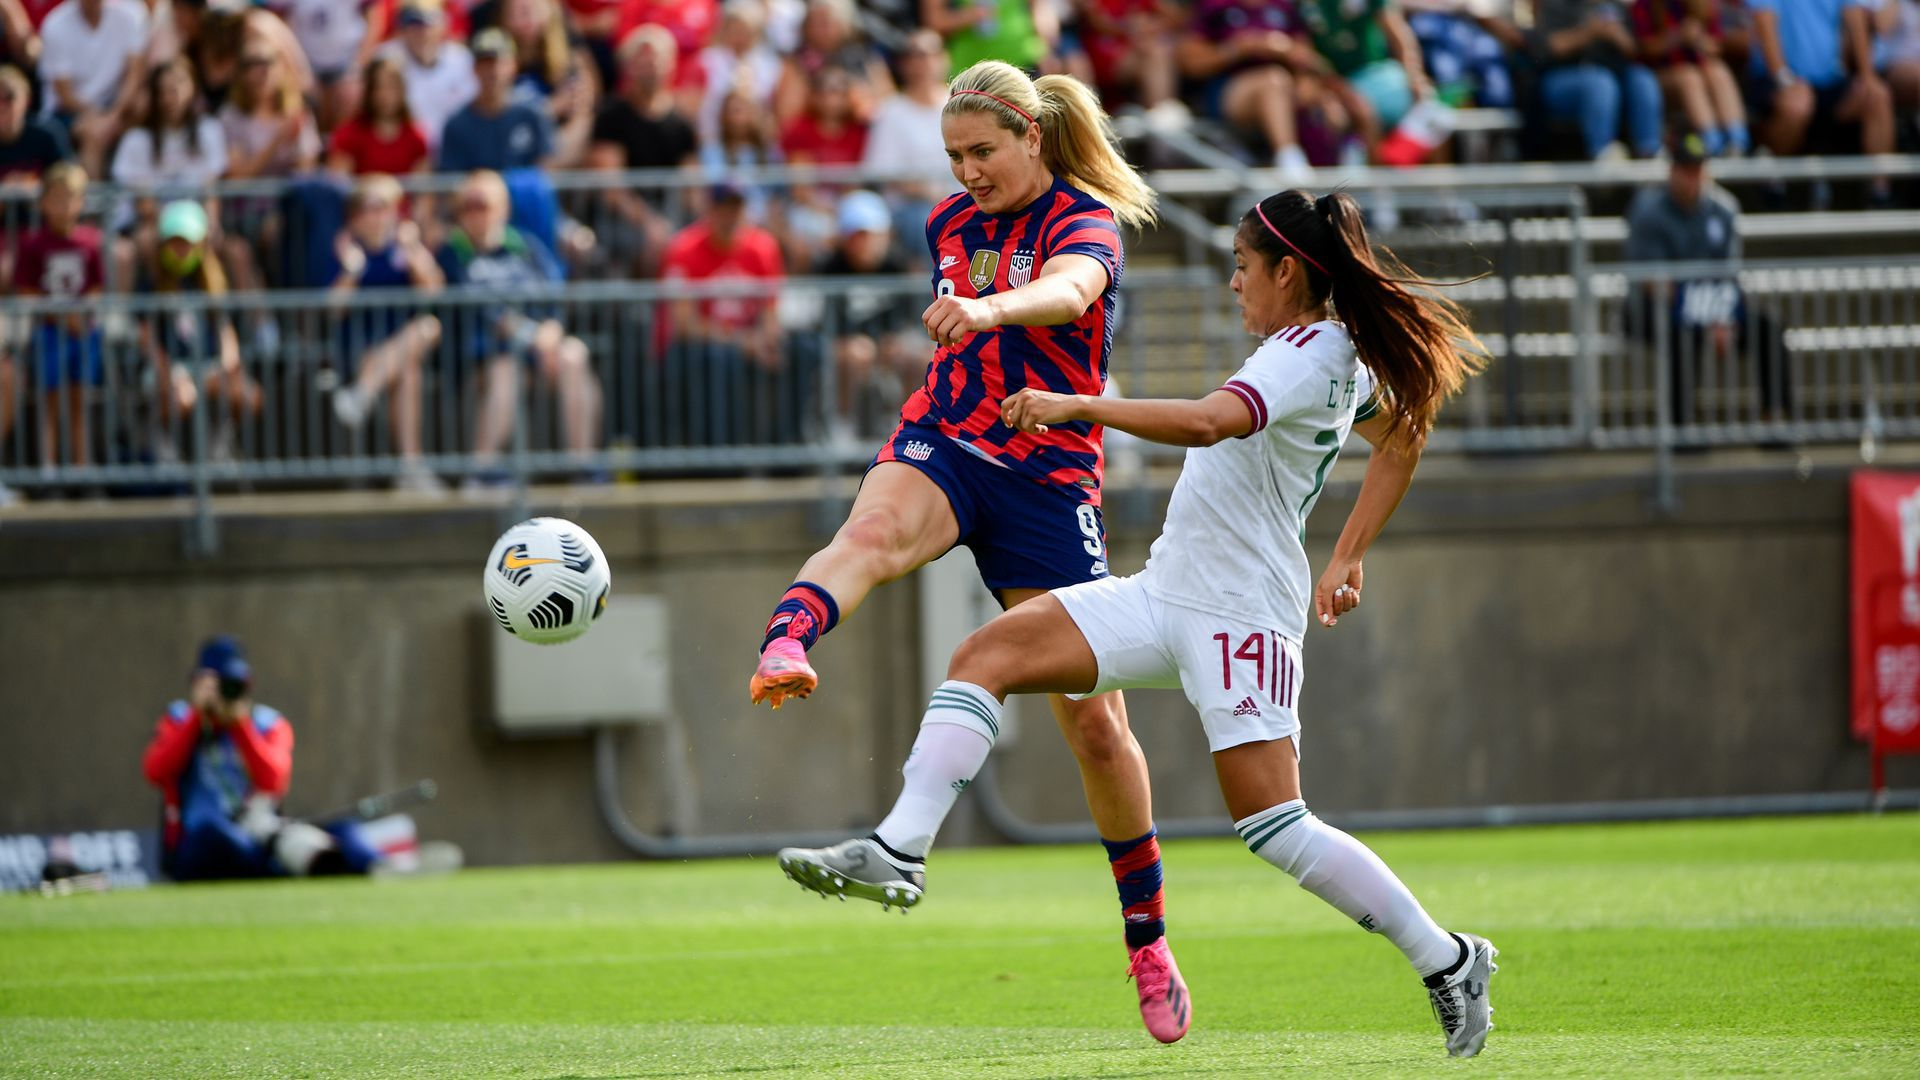 Lindsey Horan kicks the soccer ball during a game.